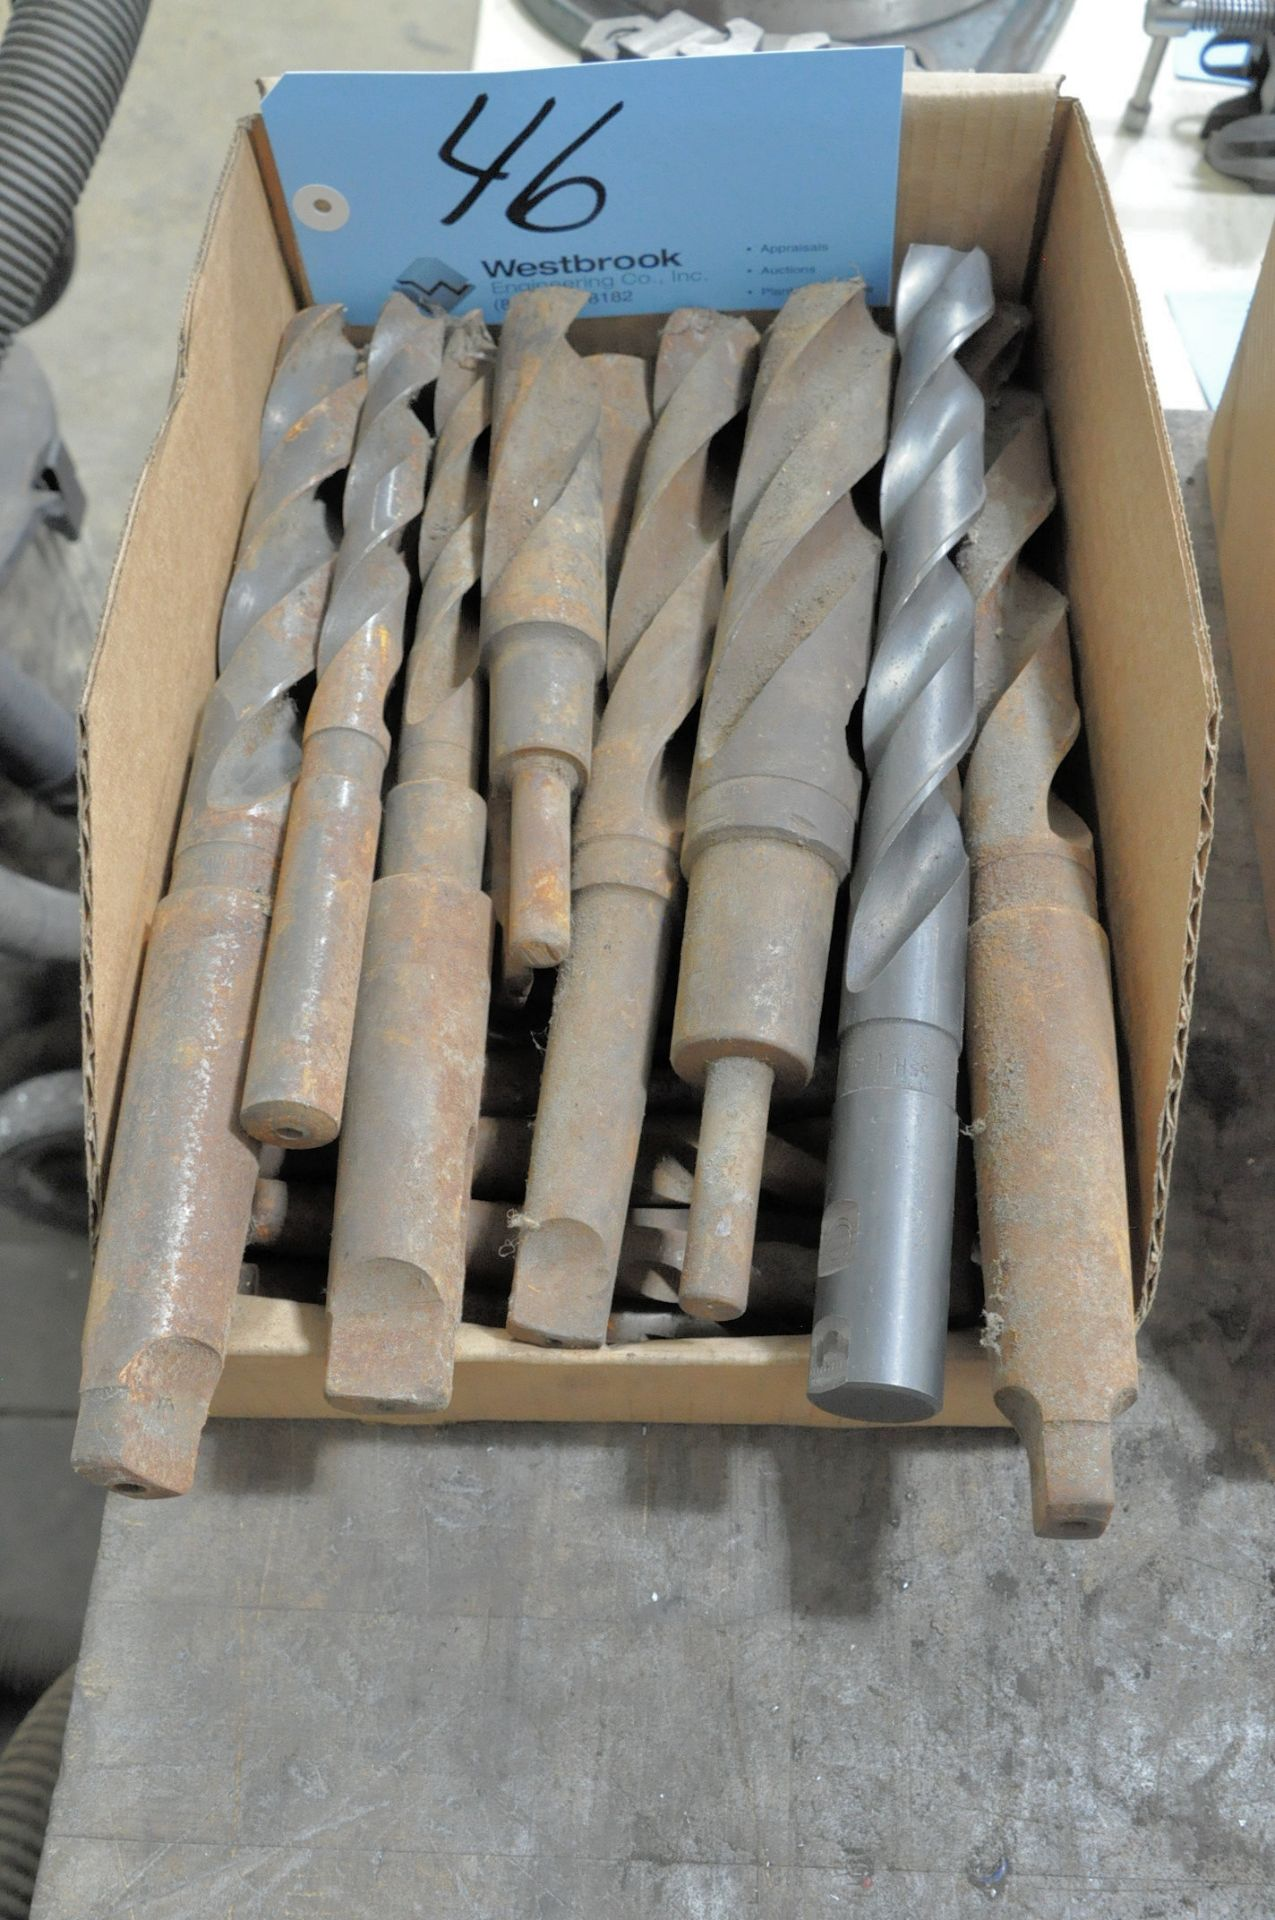 Lot 46 - Lot-Large Tapered and Straight Shank Drills in (1) Box